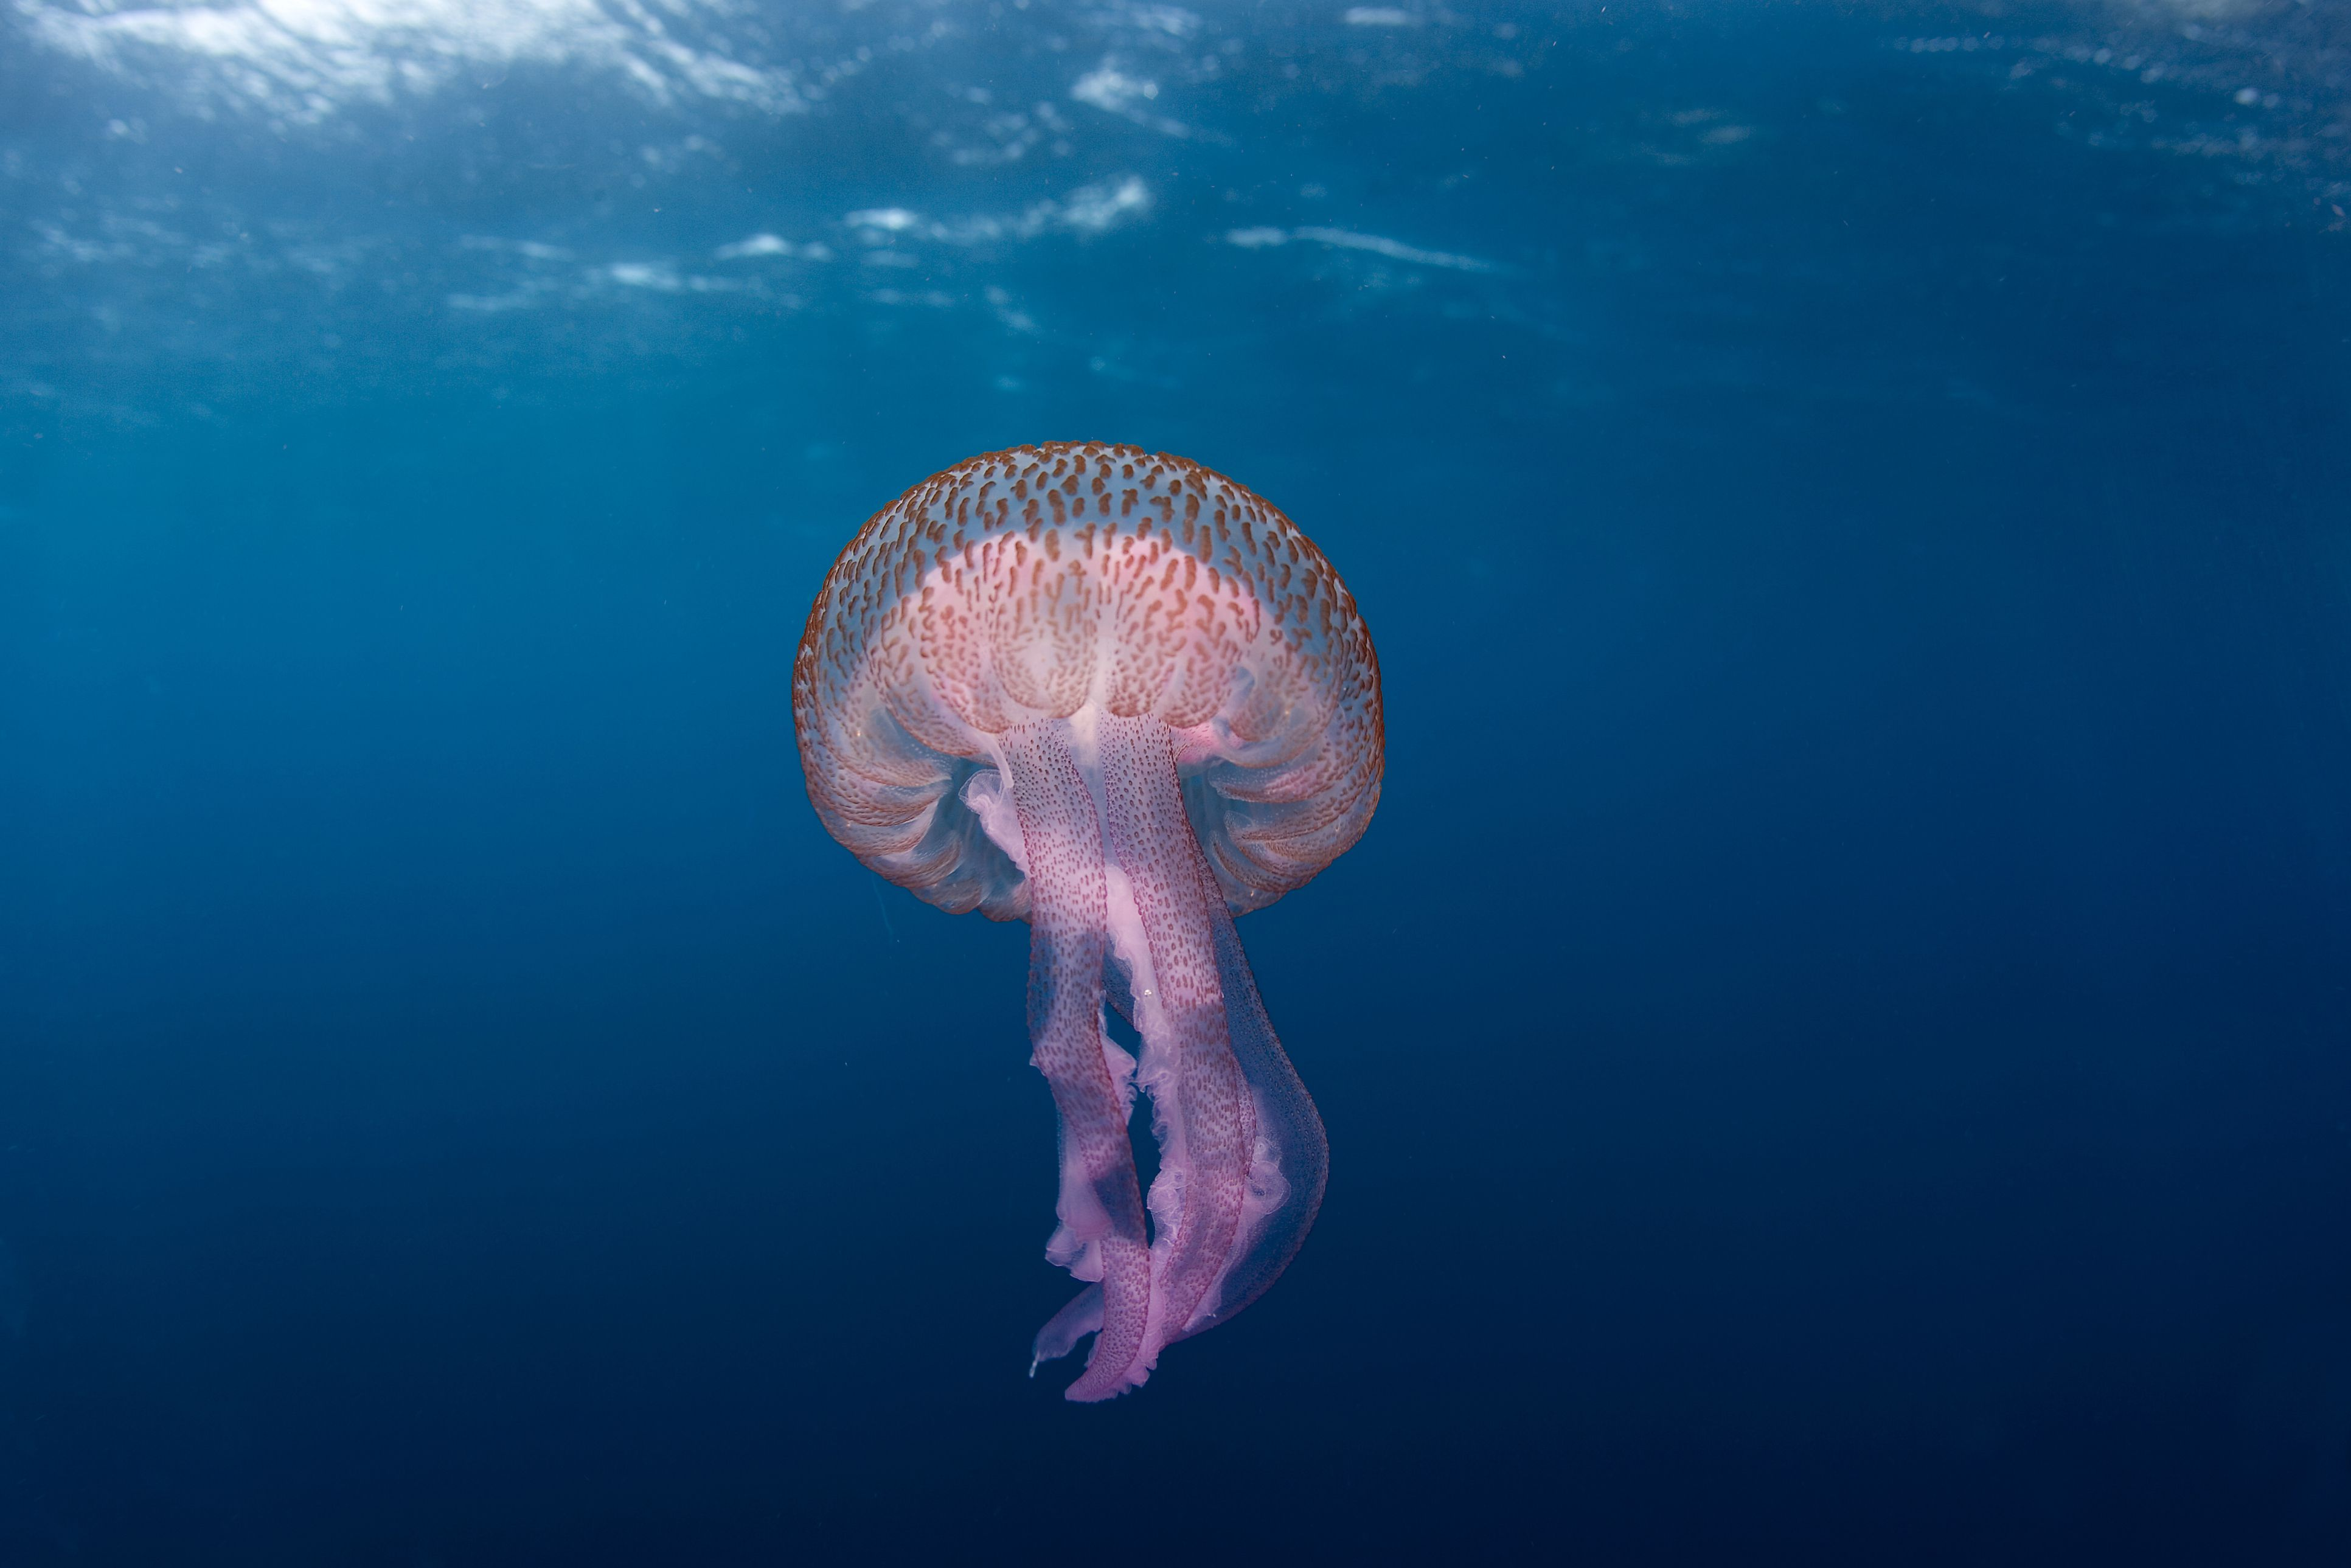 Profile of the Fascinating and Beautiful Jellyfish